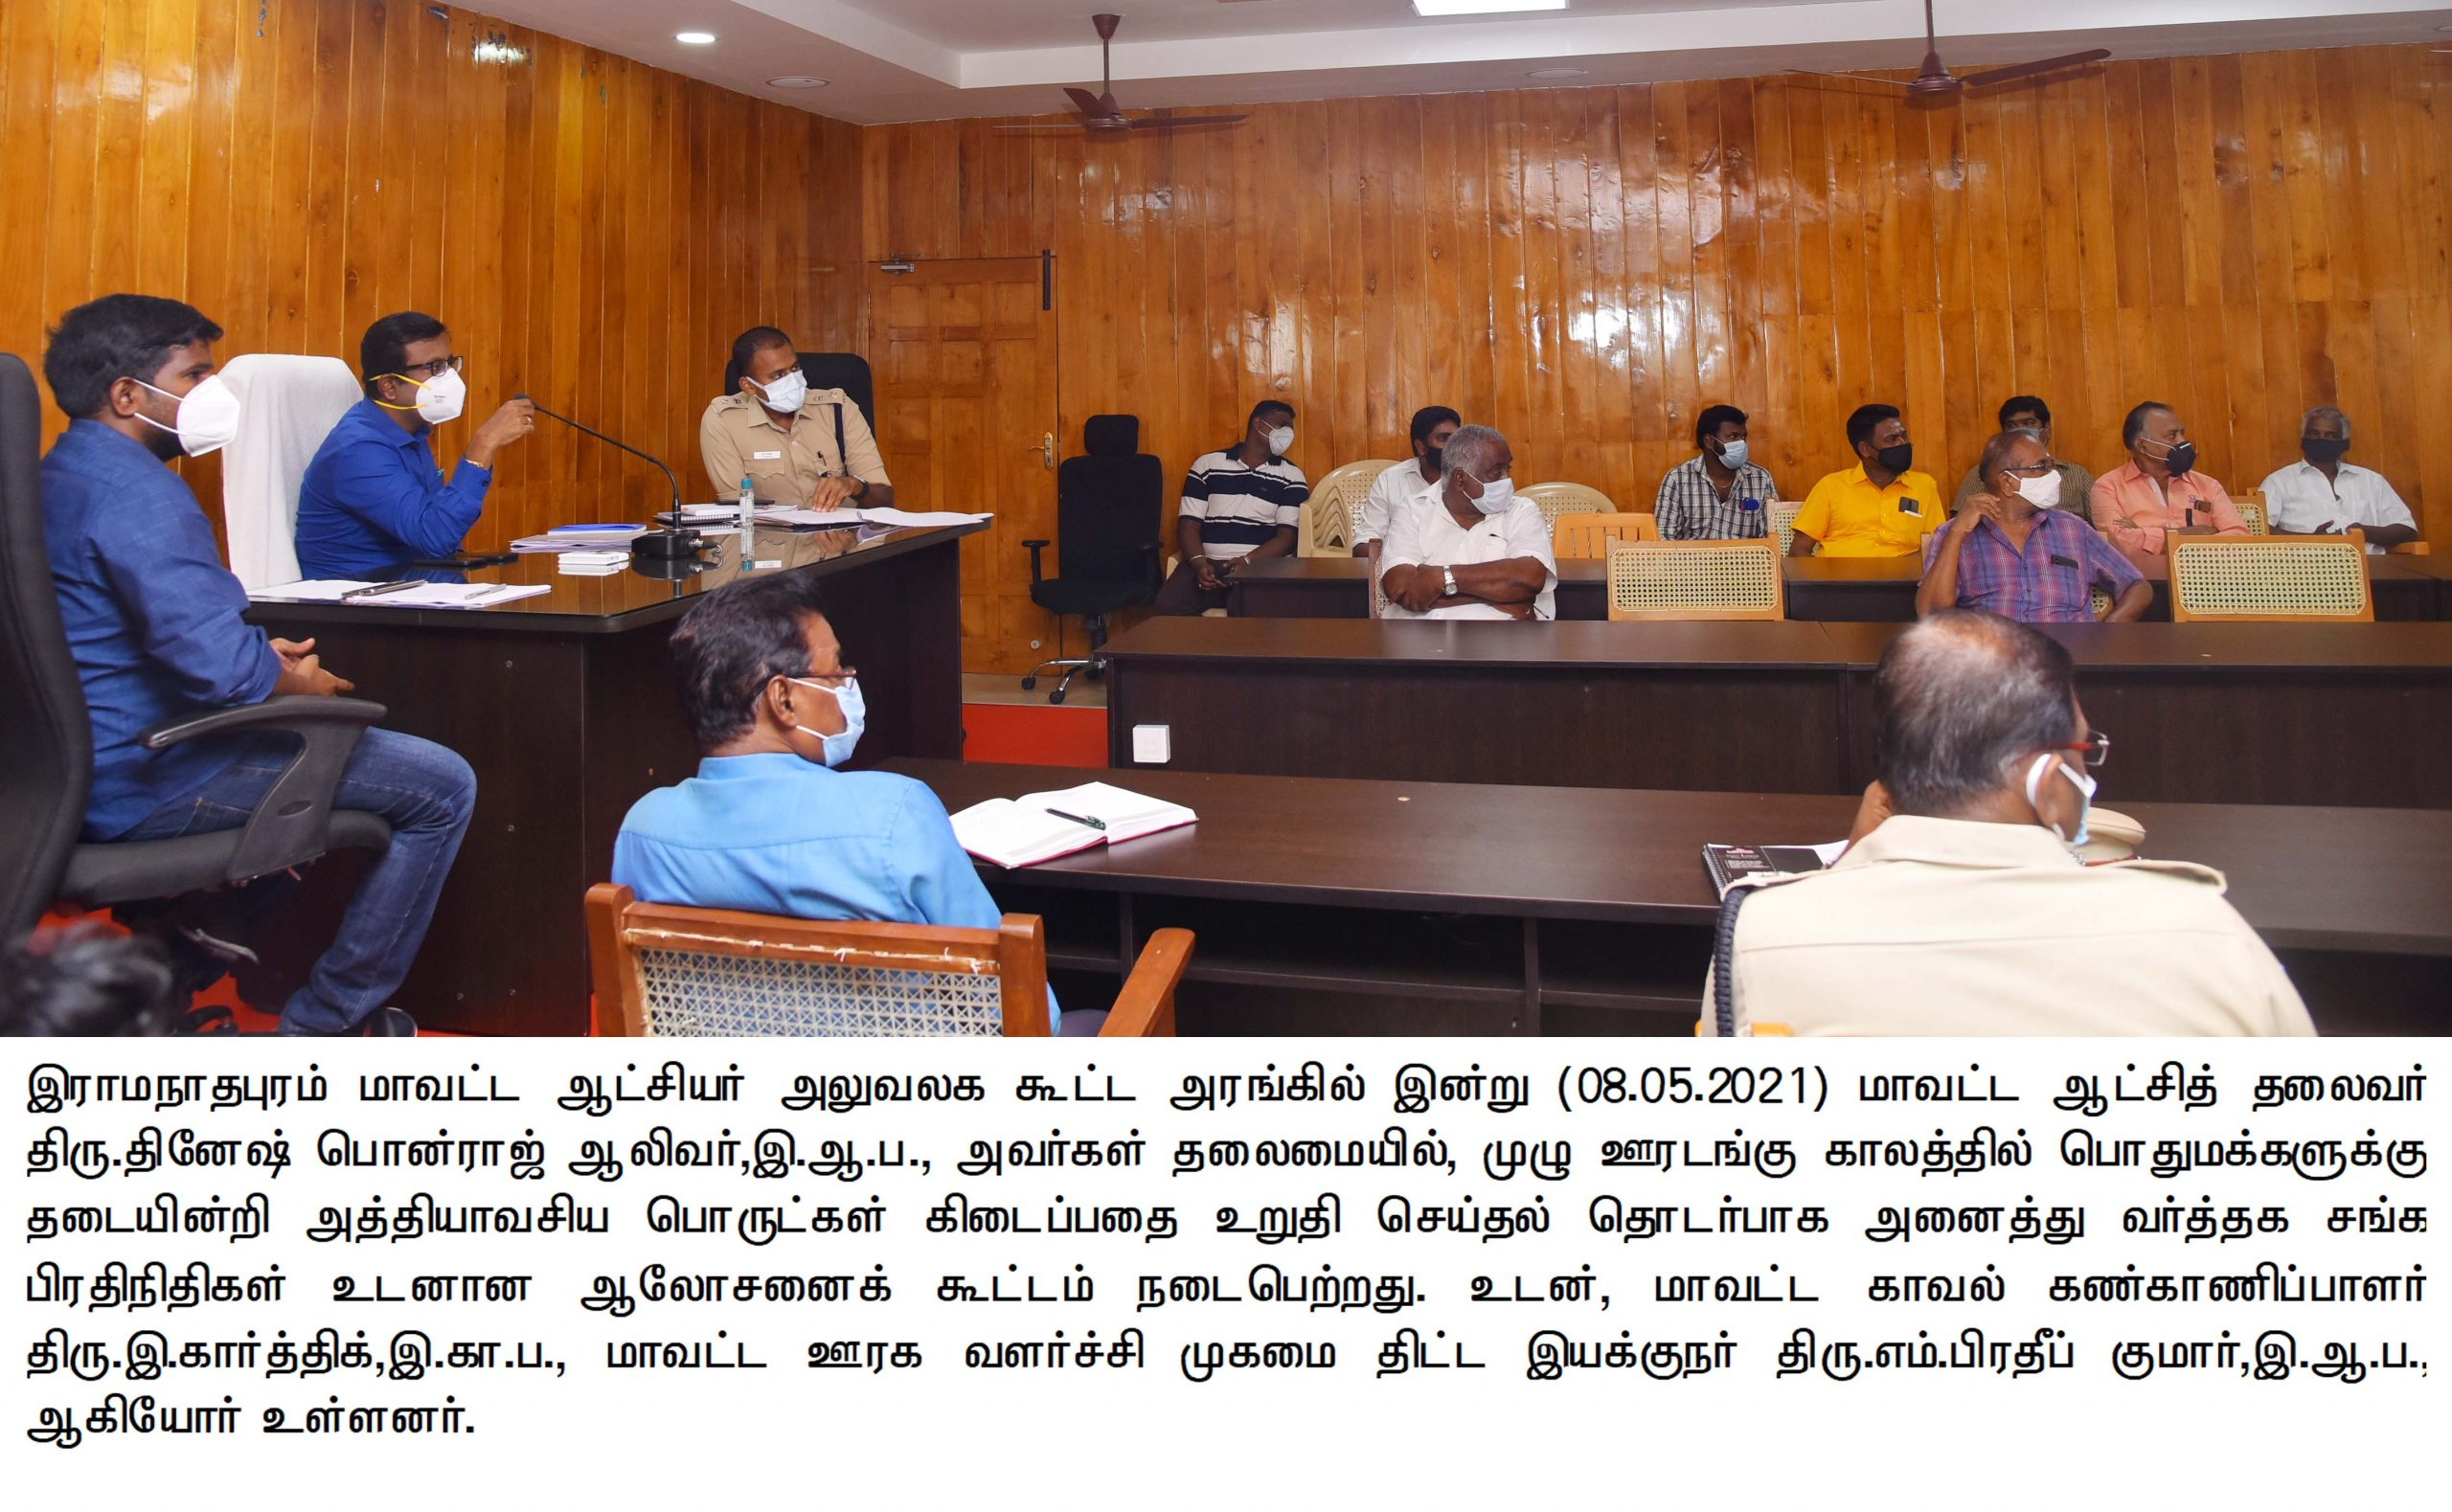 09_CURFEW_ESSENTIAL GOODS_SUPPLY CHAIN_DISCUSSION MEETING_08/05/2021